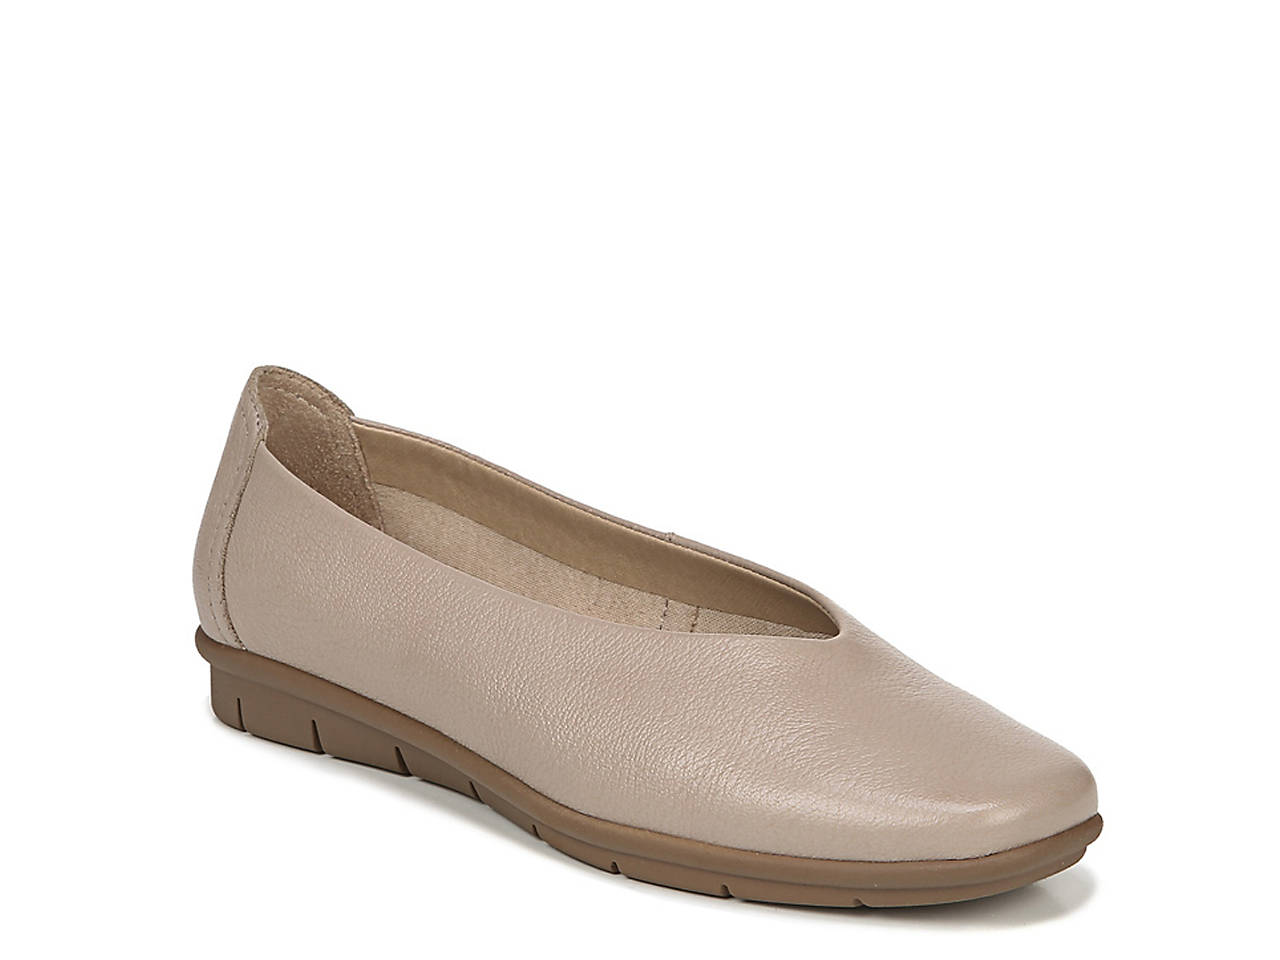 d38b956e0530 SOUL Naturalizer Leyla Slip-On Women s Shoes